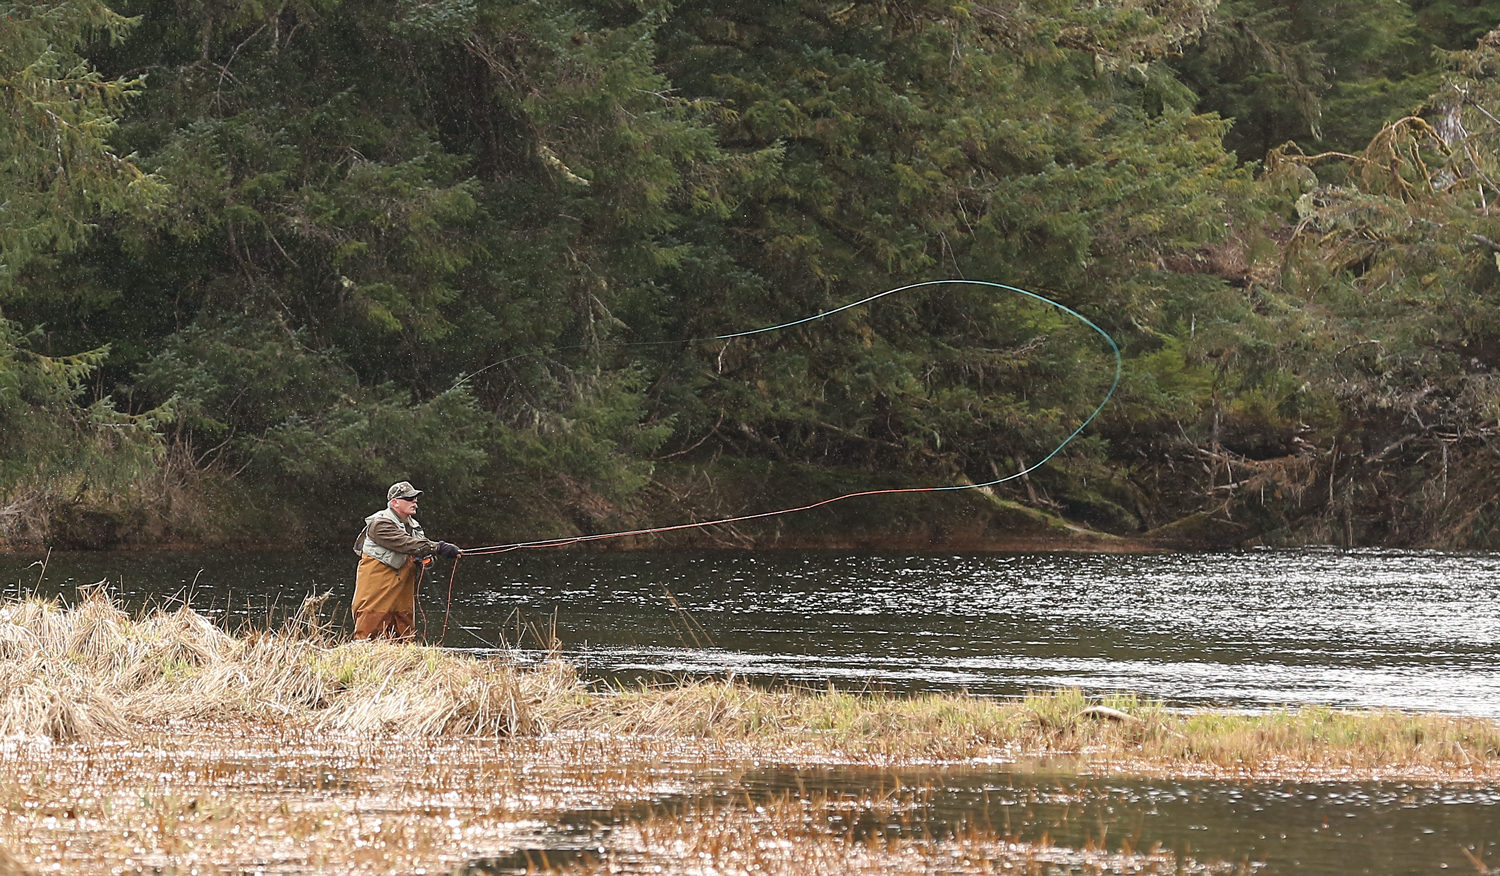 This fisherman nodded approval when I hand signaled a request to photograph him. Thank you, Fly Fisherman!